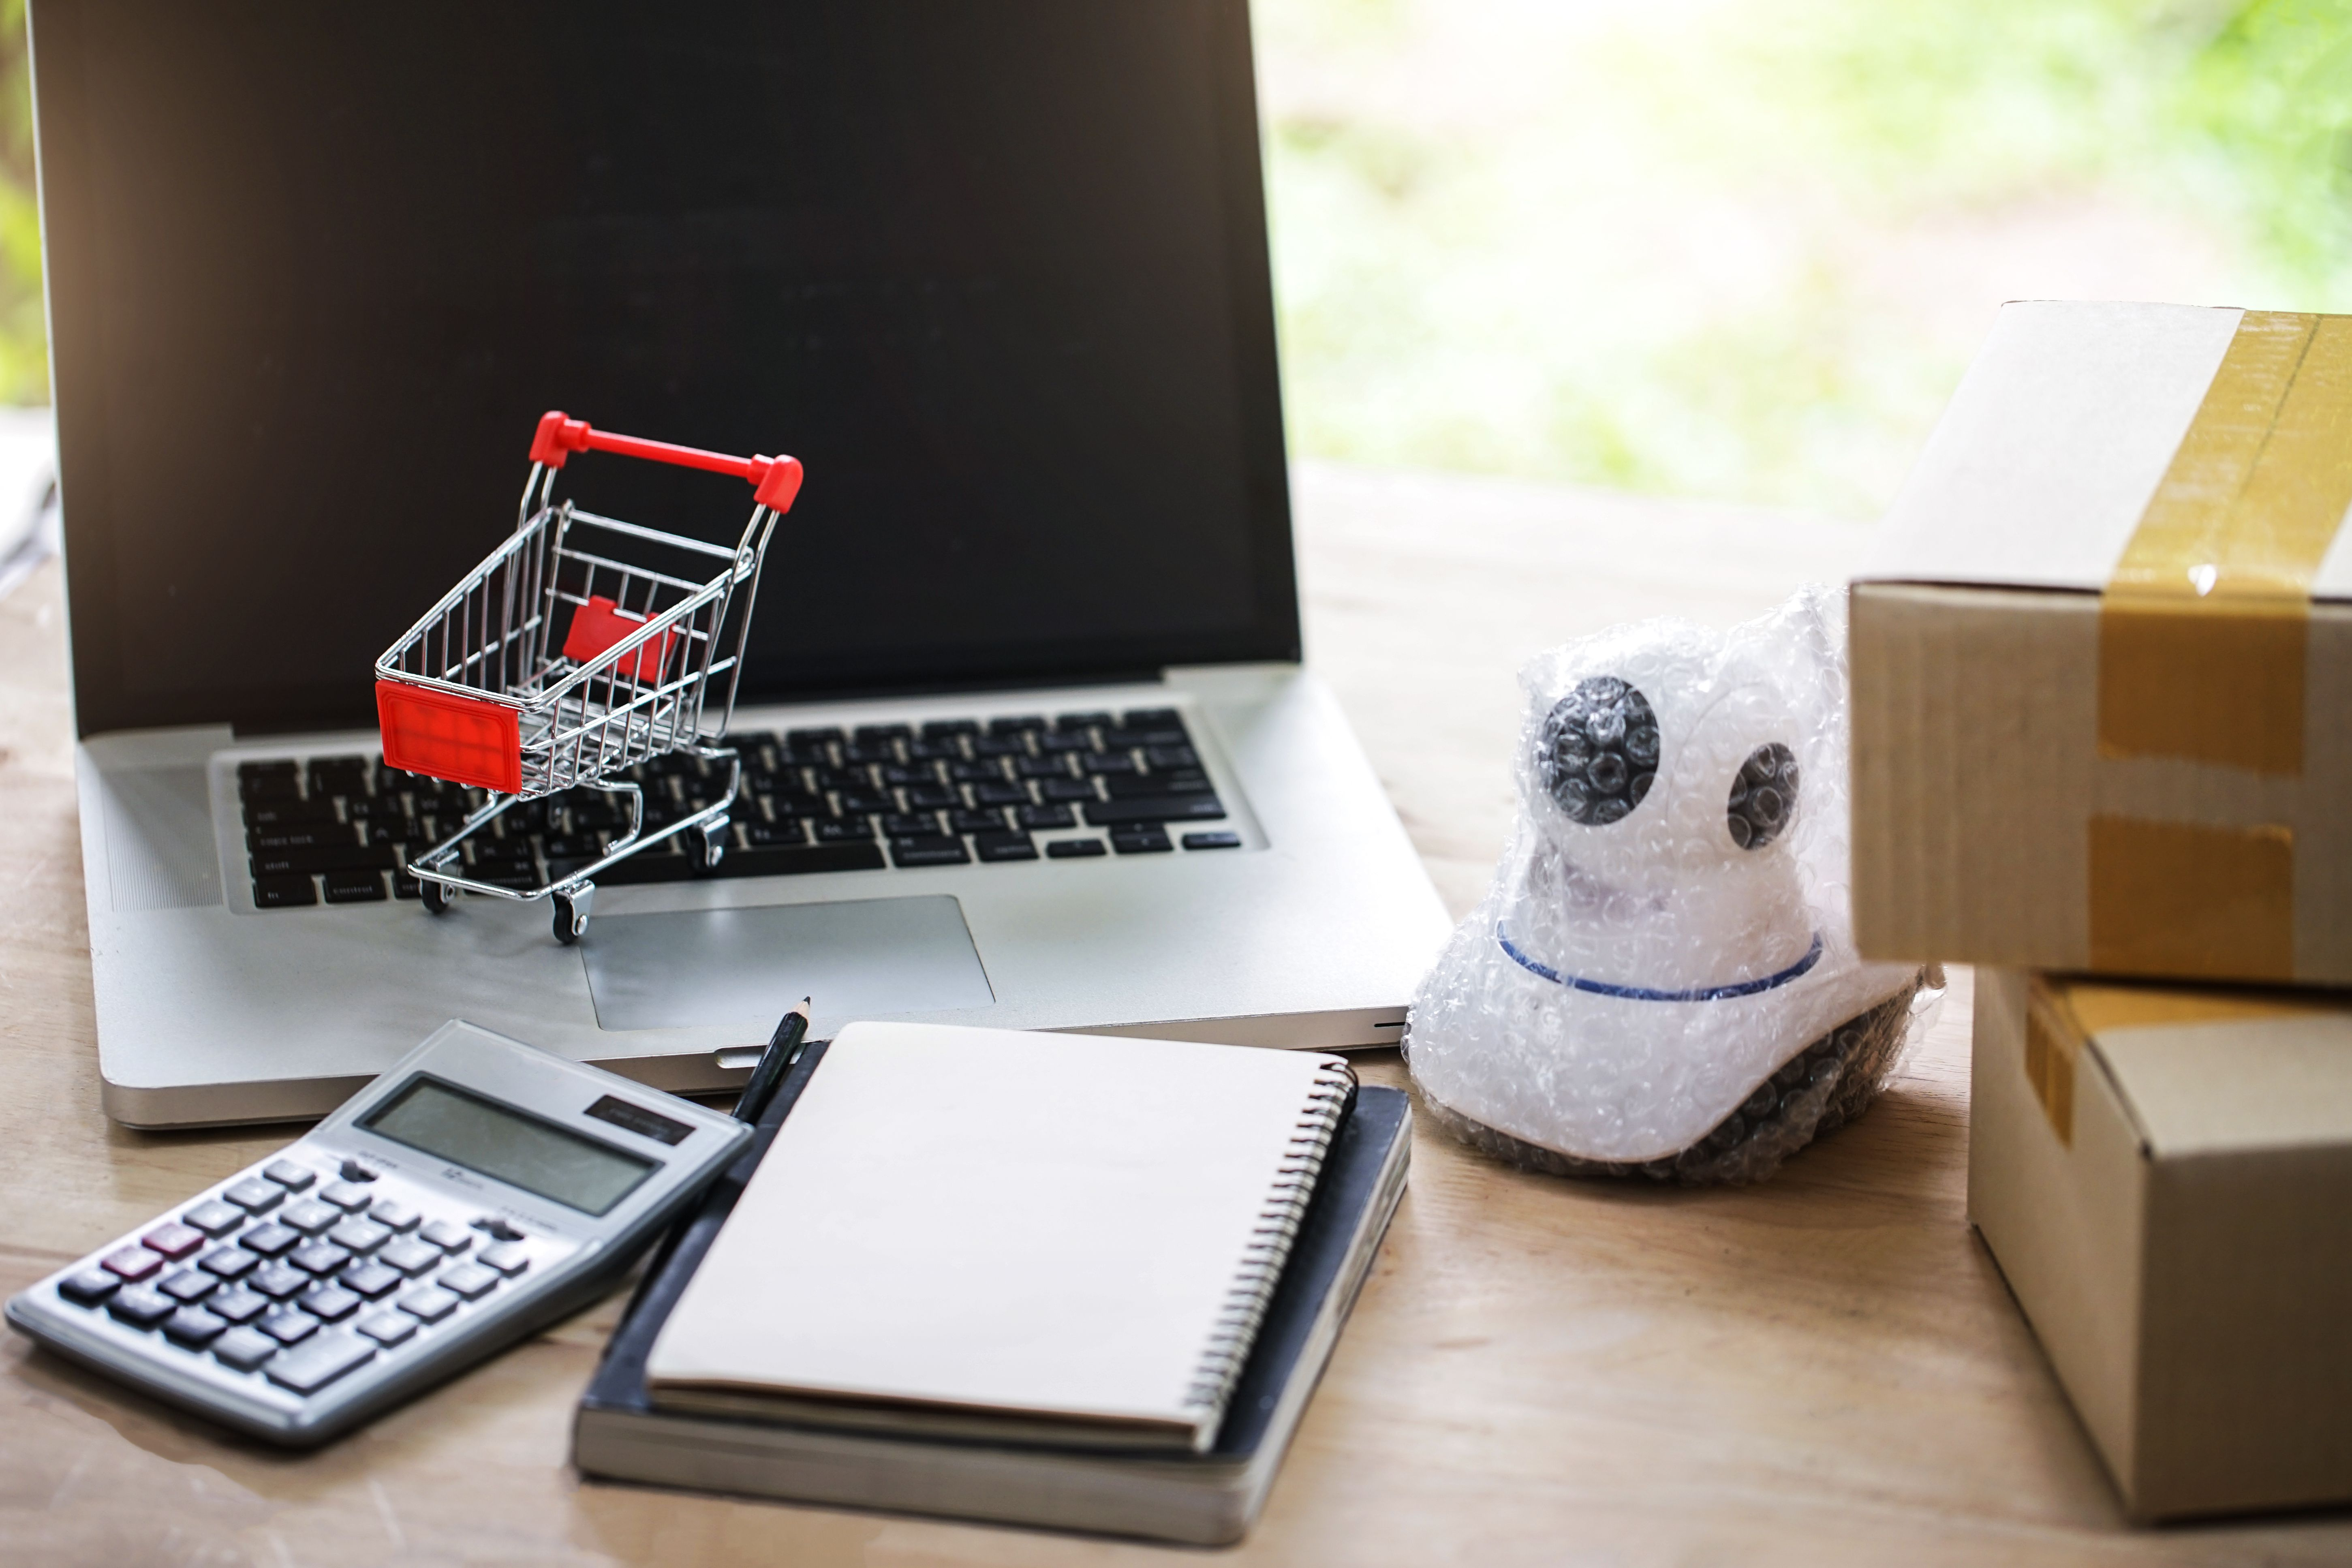 Notebooks, calculator, toy shopping cart and various products and boxes depicting online sales